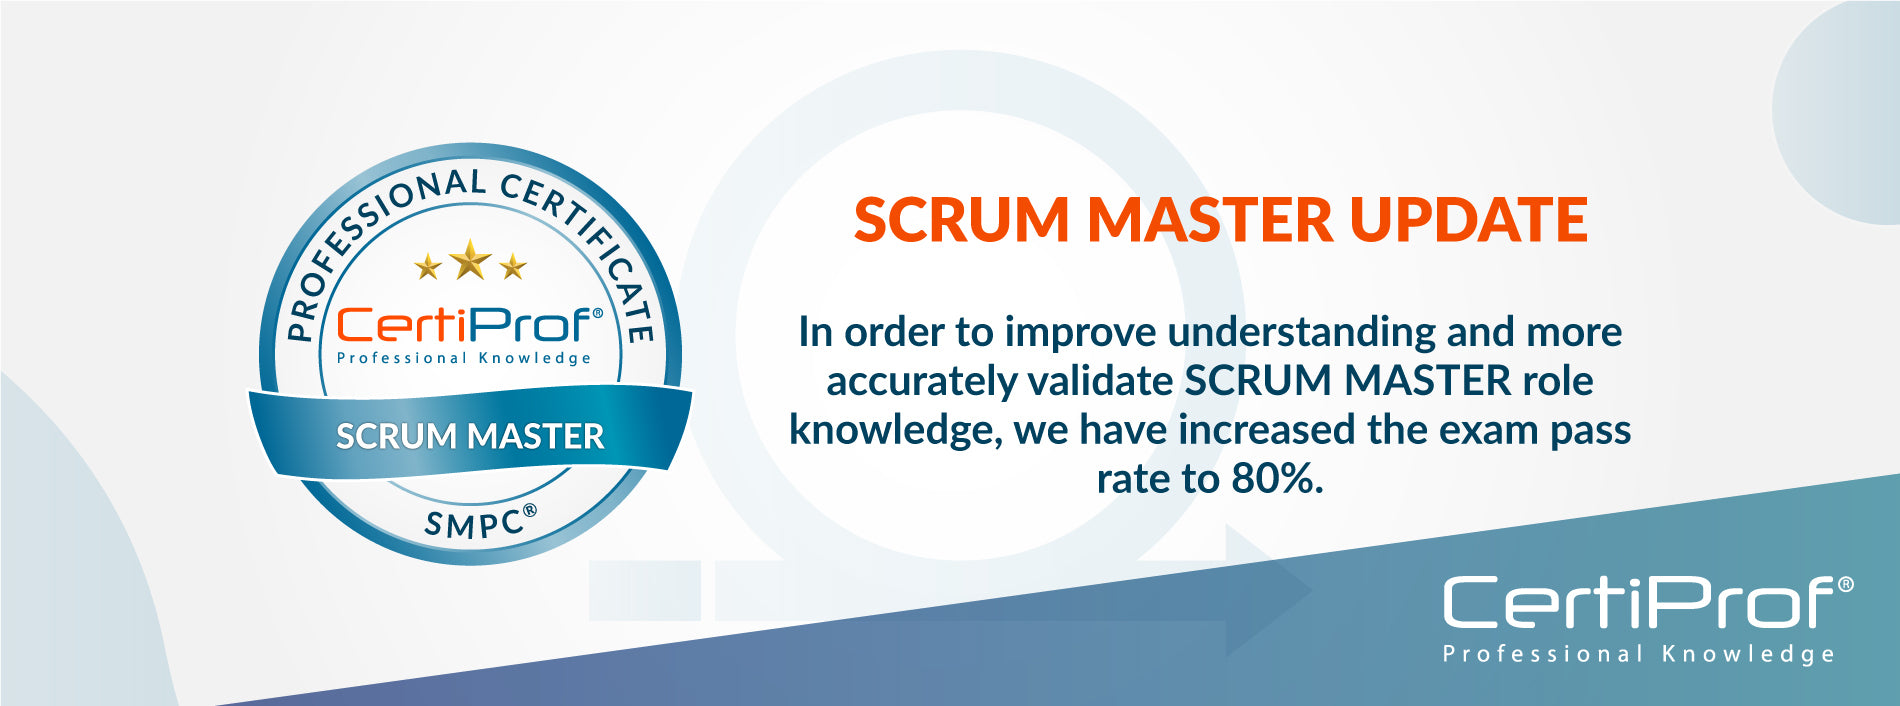 SMPC Scrum Master CertiProf Quality Reviews